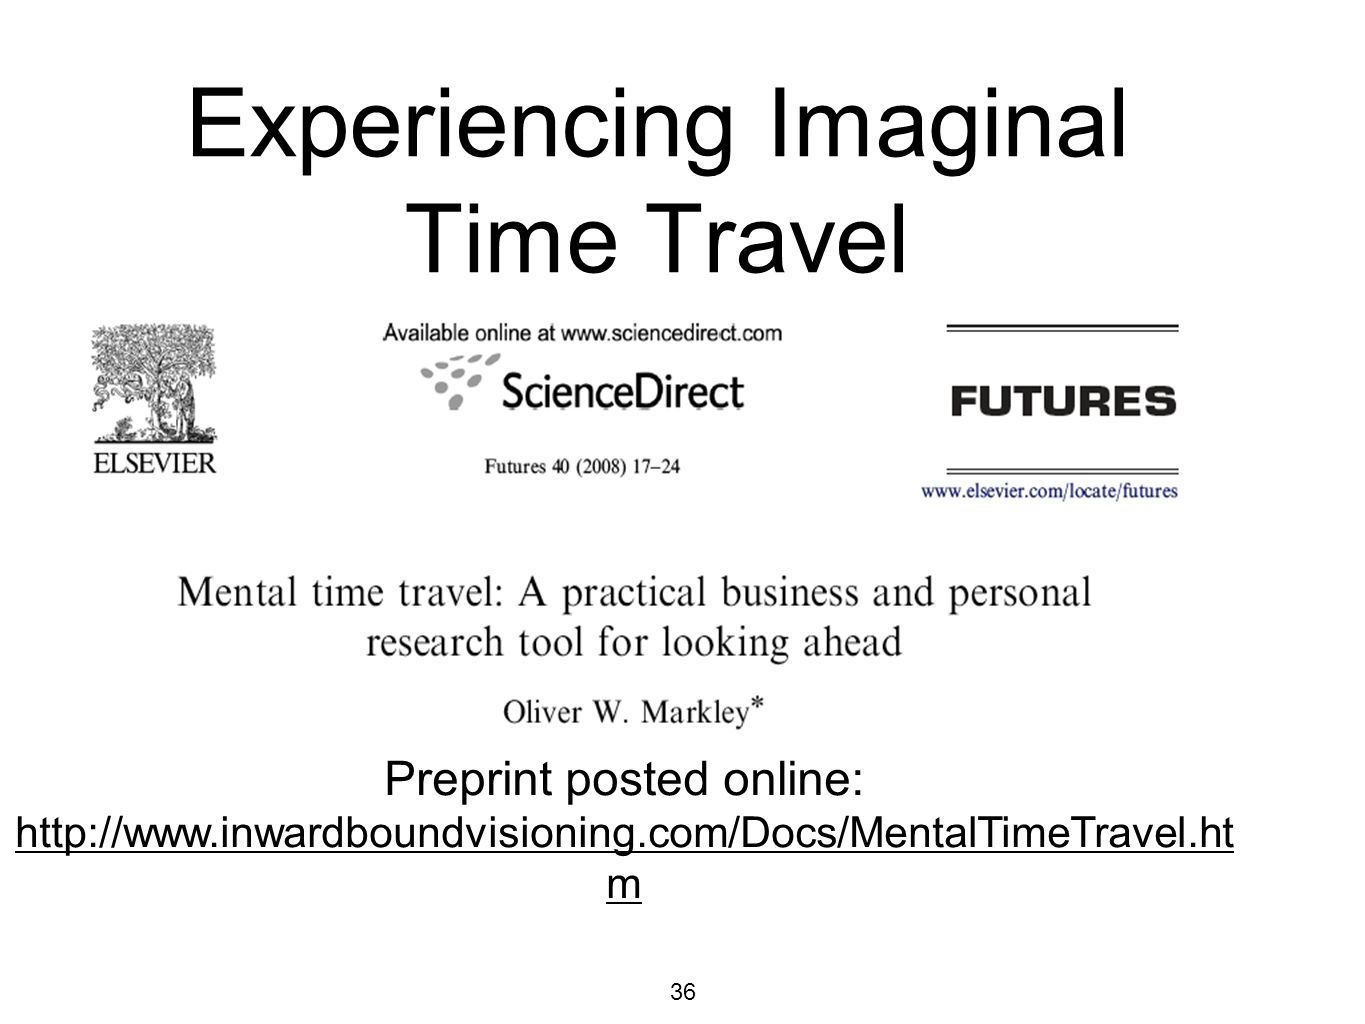 36 Experiencing Imaginal Time Travel Preprint posted online: http://www.inwardboundvisioning.com/Docs/MentalTimeTravel.ht m